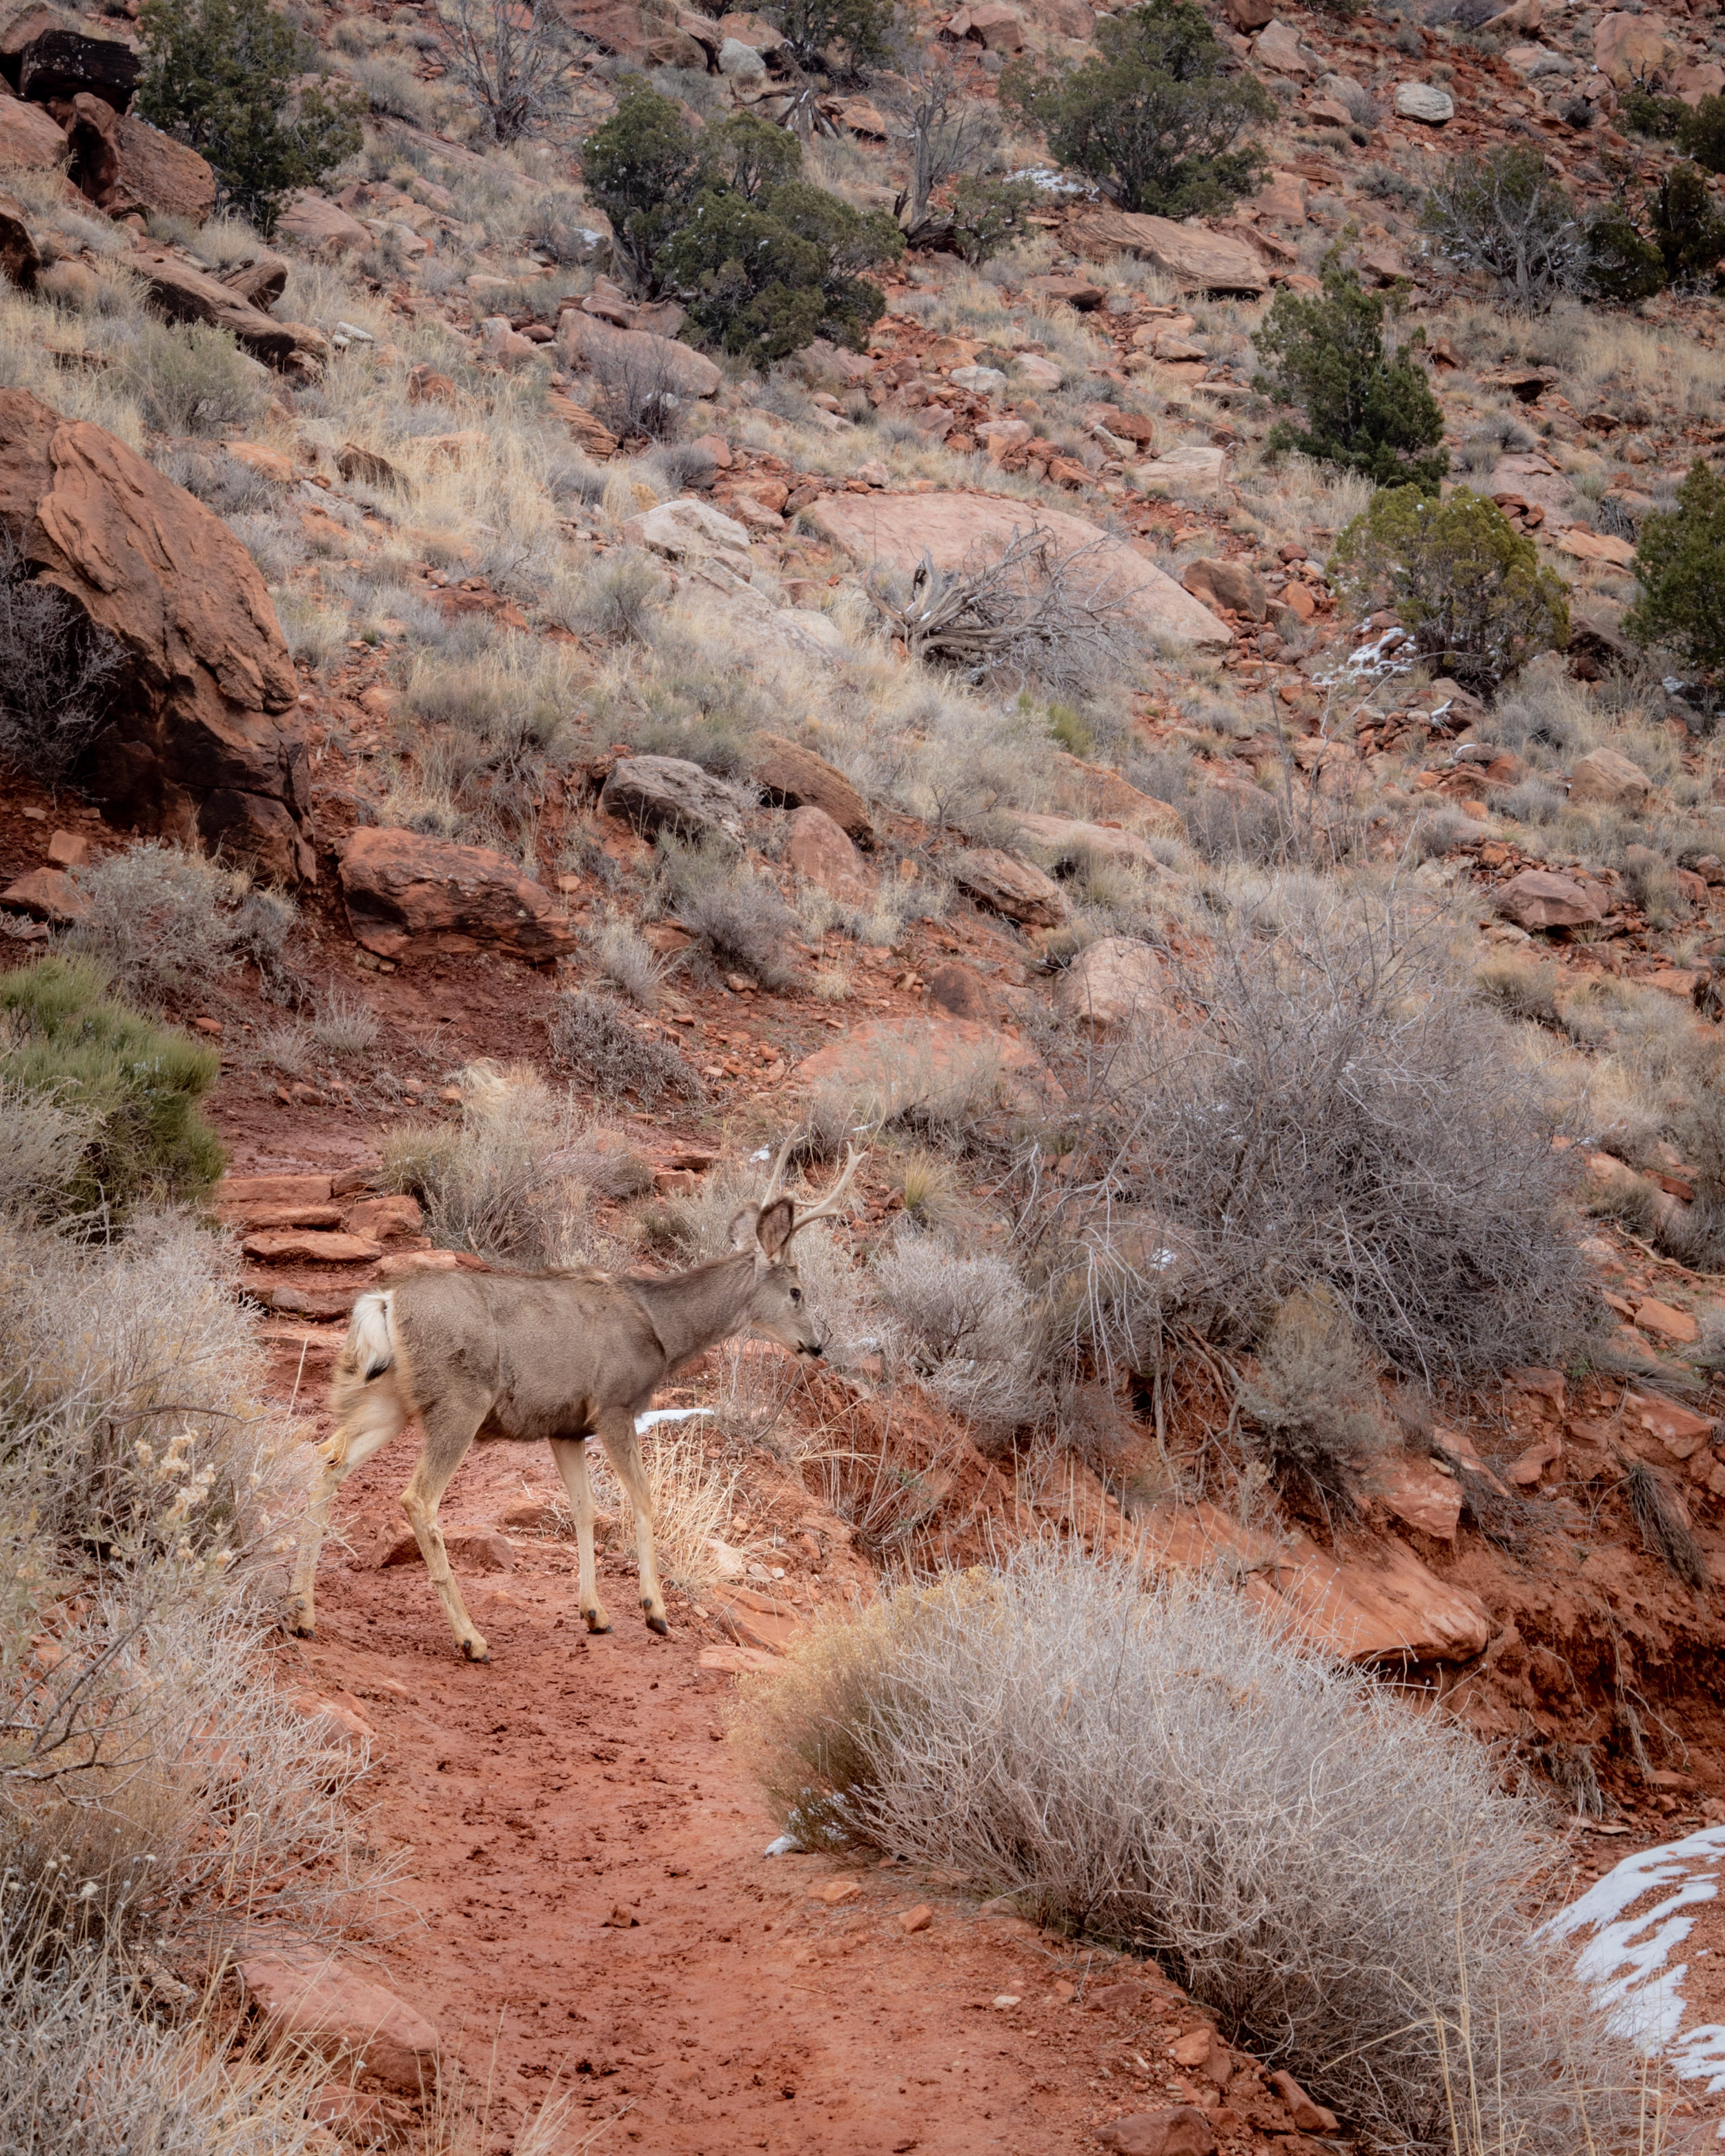 Deer crossing the path on the Watchman Trail